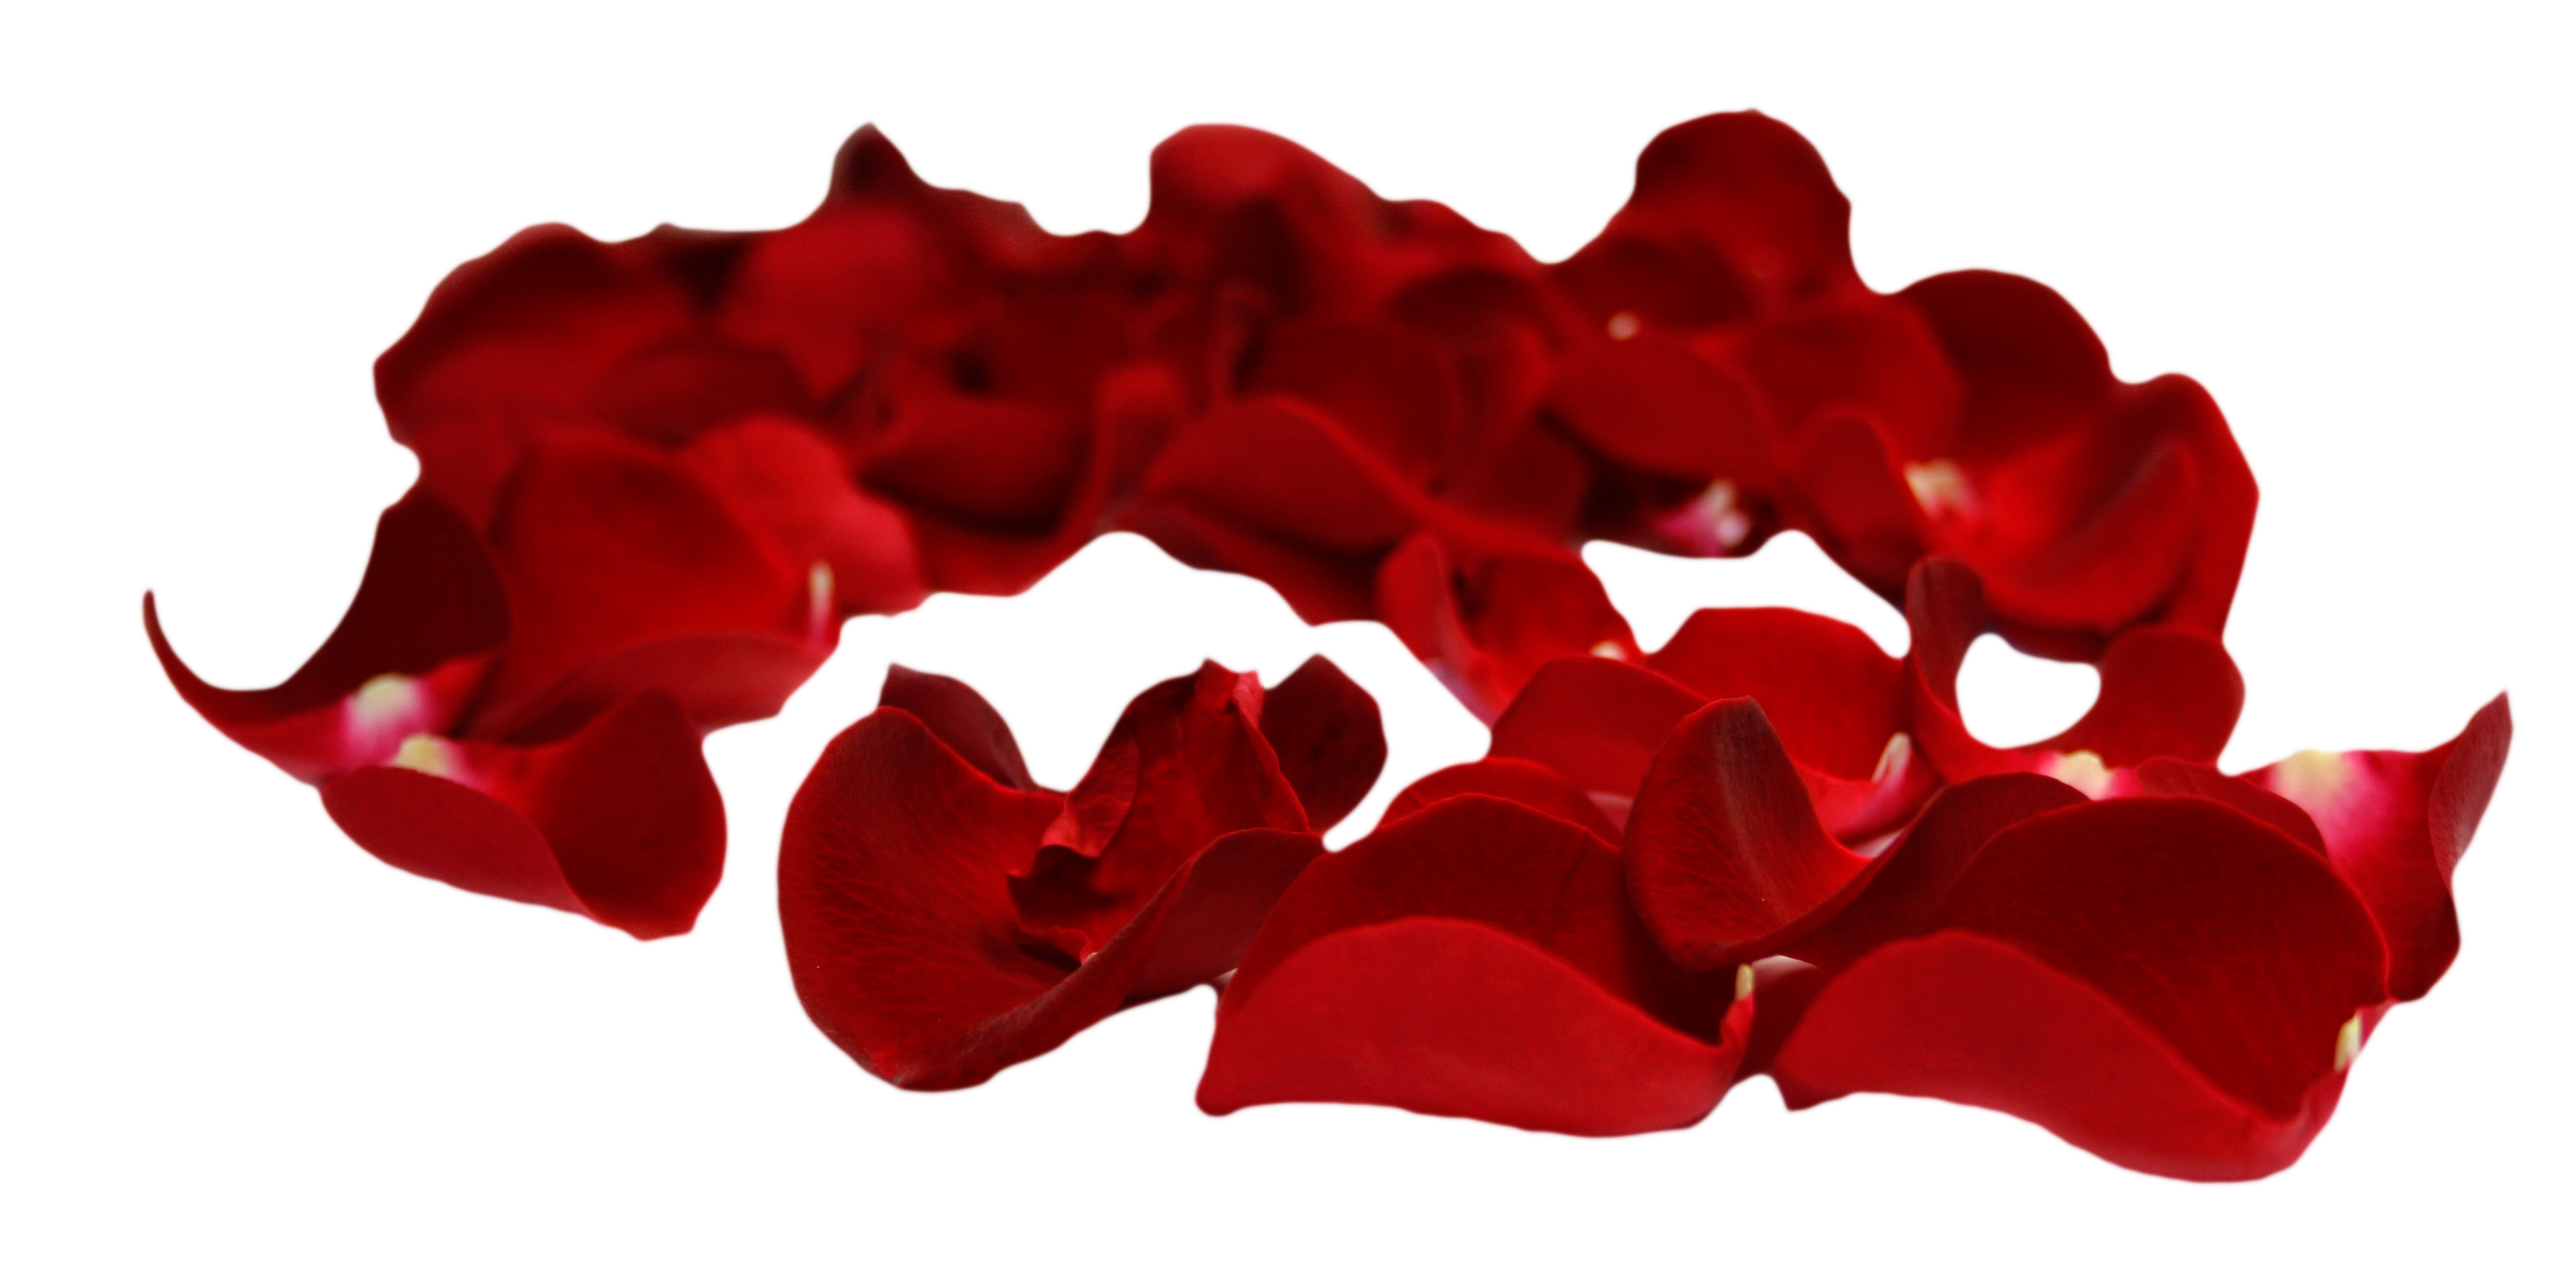 Flower pedals png. Rose petals psd with